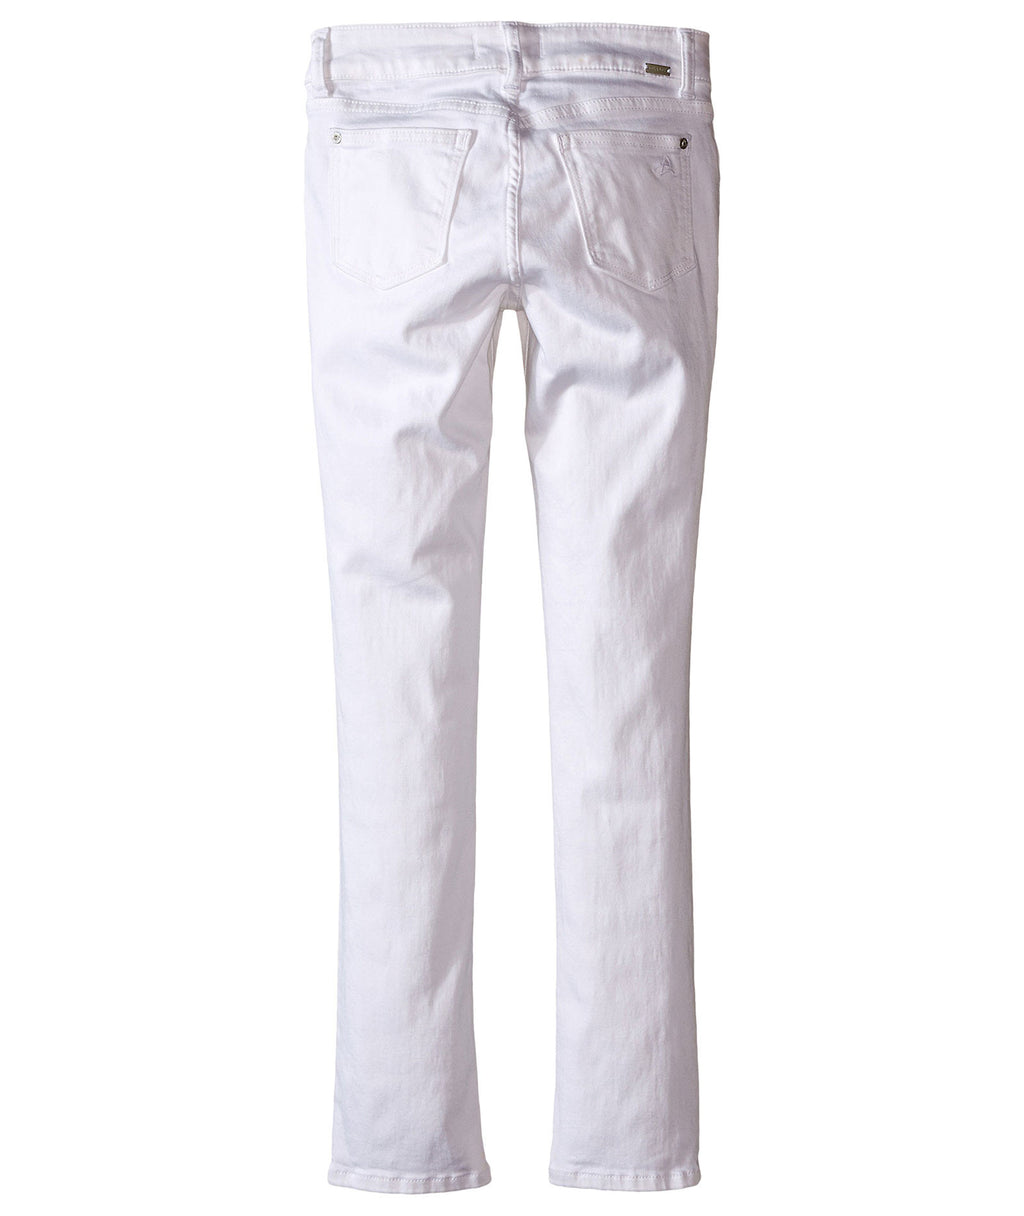 DL1961 Girls Chloe White Jeans - Frankie's on the Park